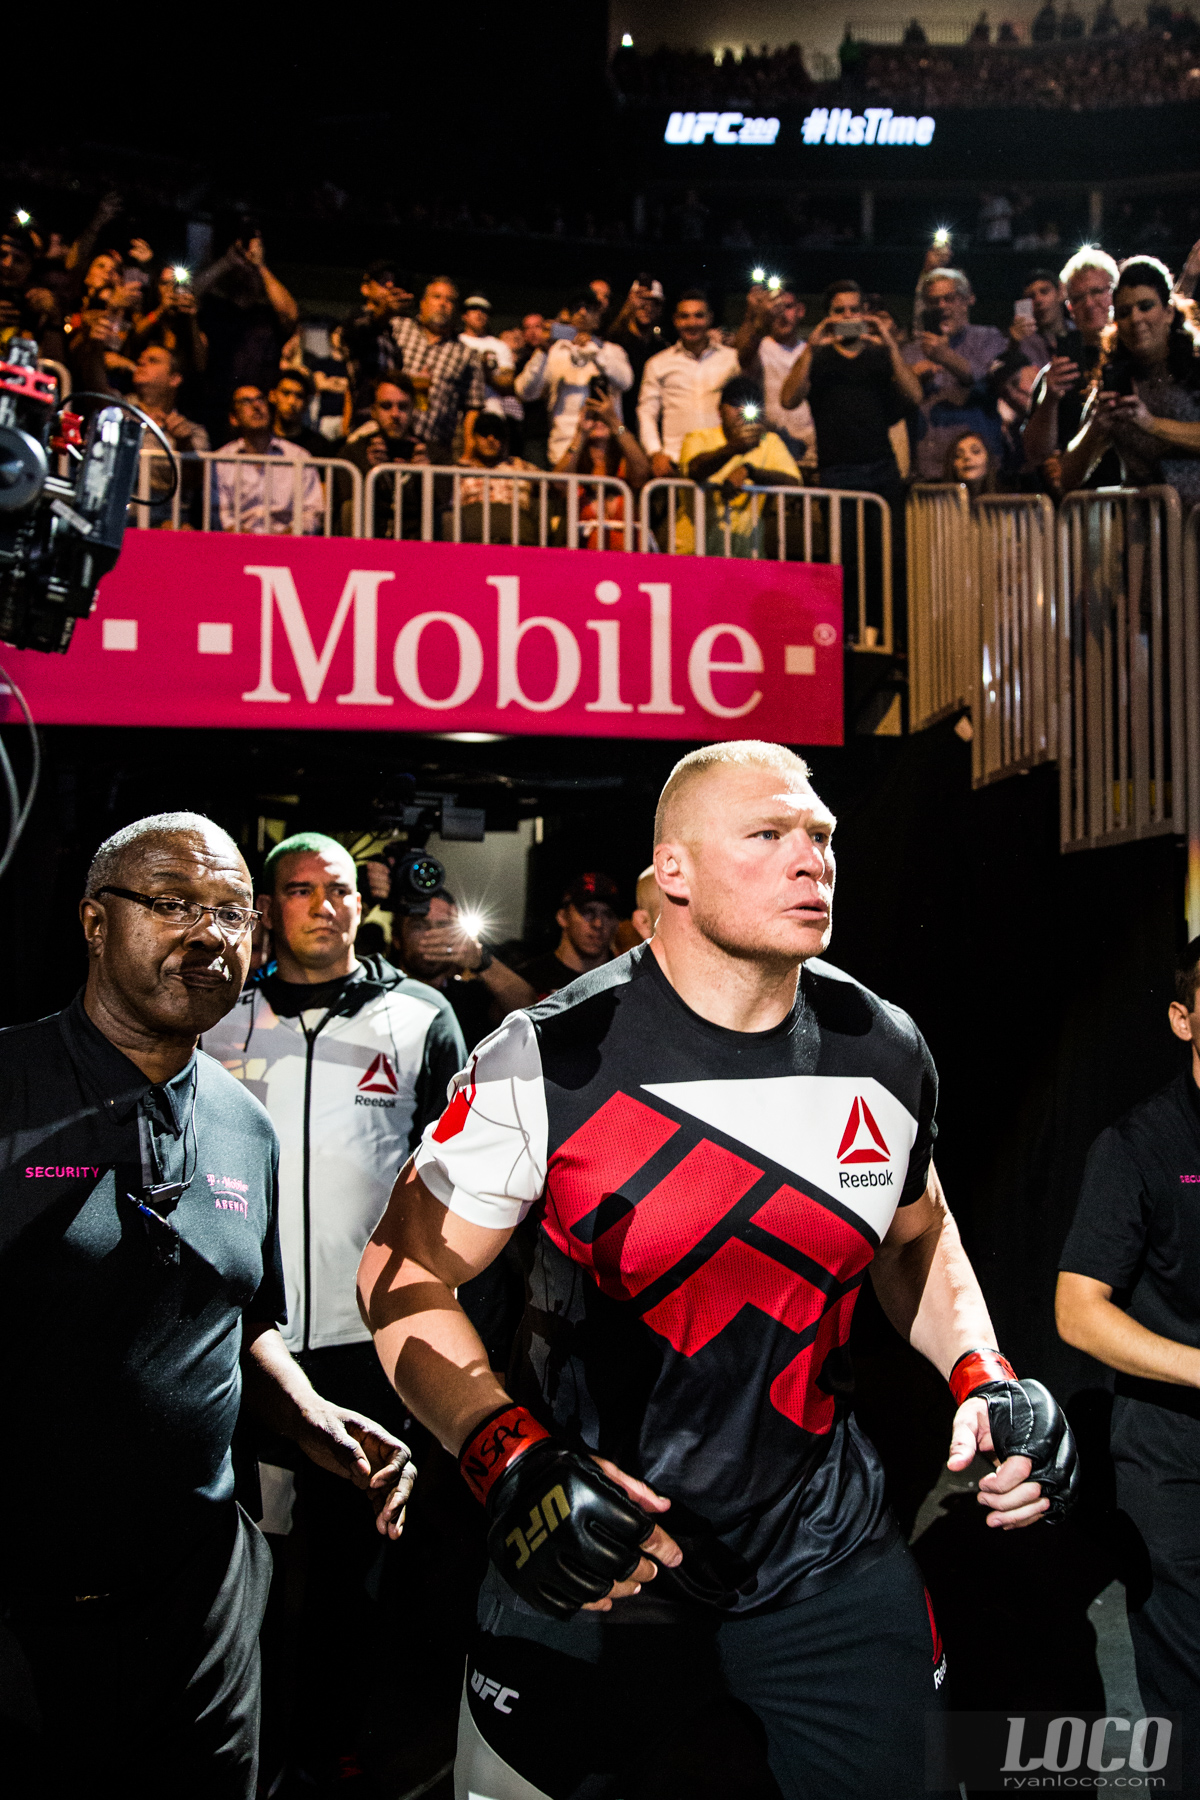 """The Beast Incarnate"" Brock Lesnar makes his entrance (and return) to the Octagon against Mark Hunt at UFC 200 in Las Vegas at the T-Mobile Arena."